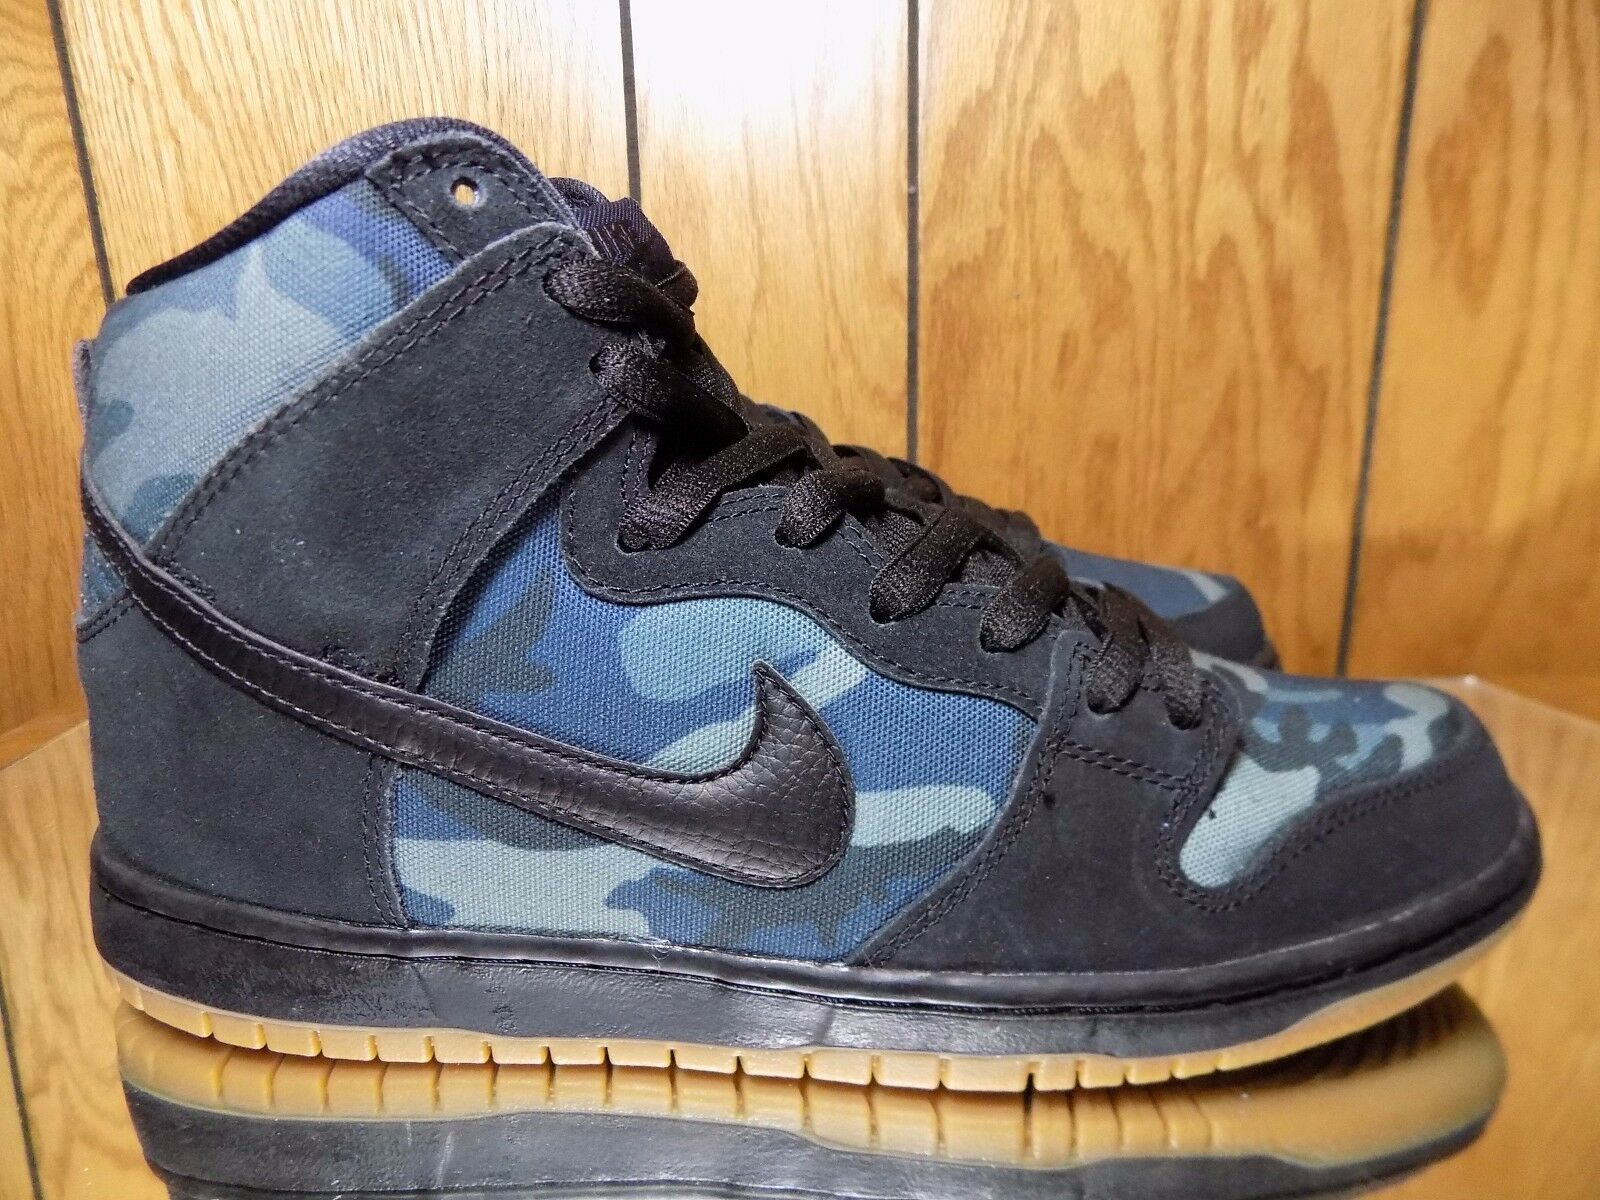 Nike Dunk SB High Obsidian Blue Brian Anderson 510 Camo size 11 Seasonal price cuts, discount benefits